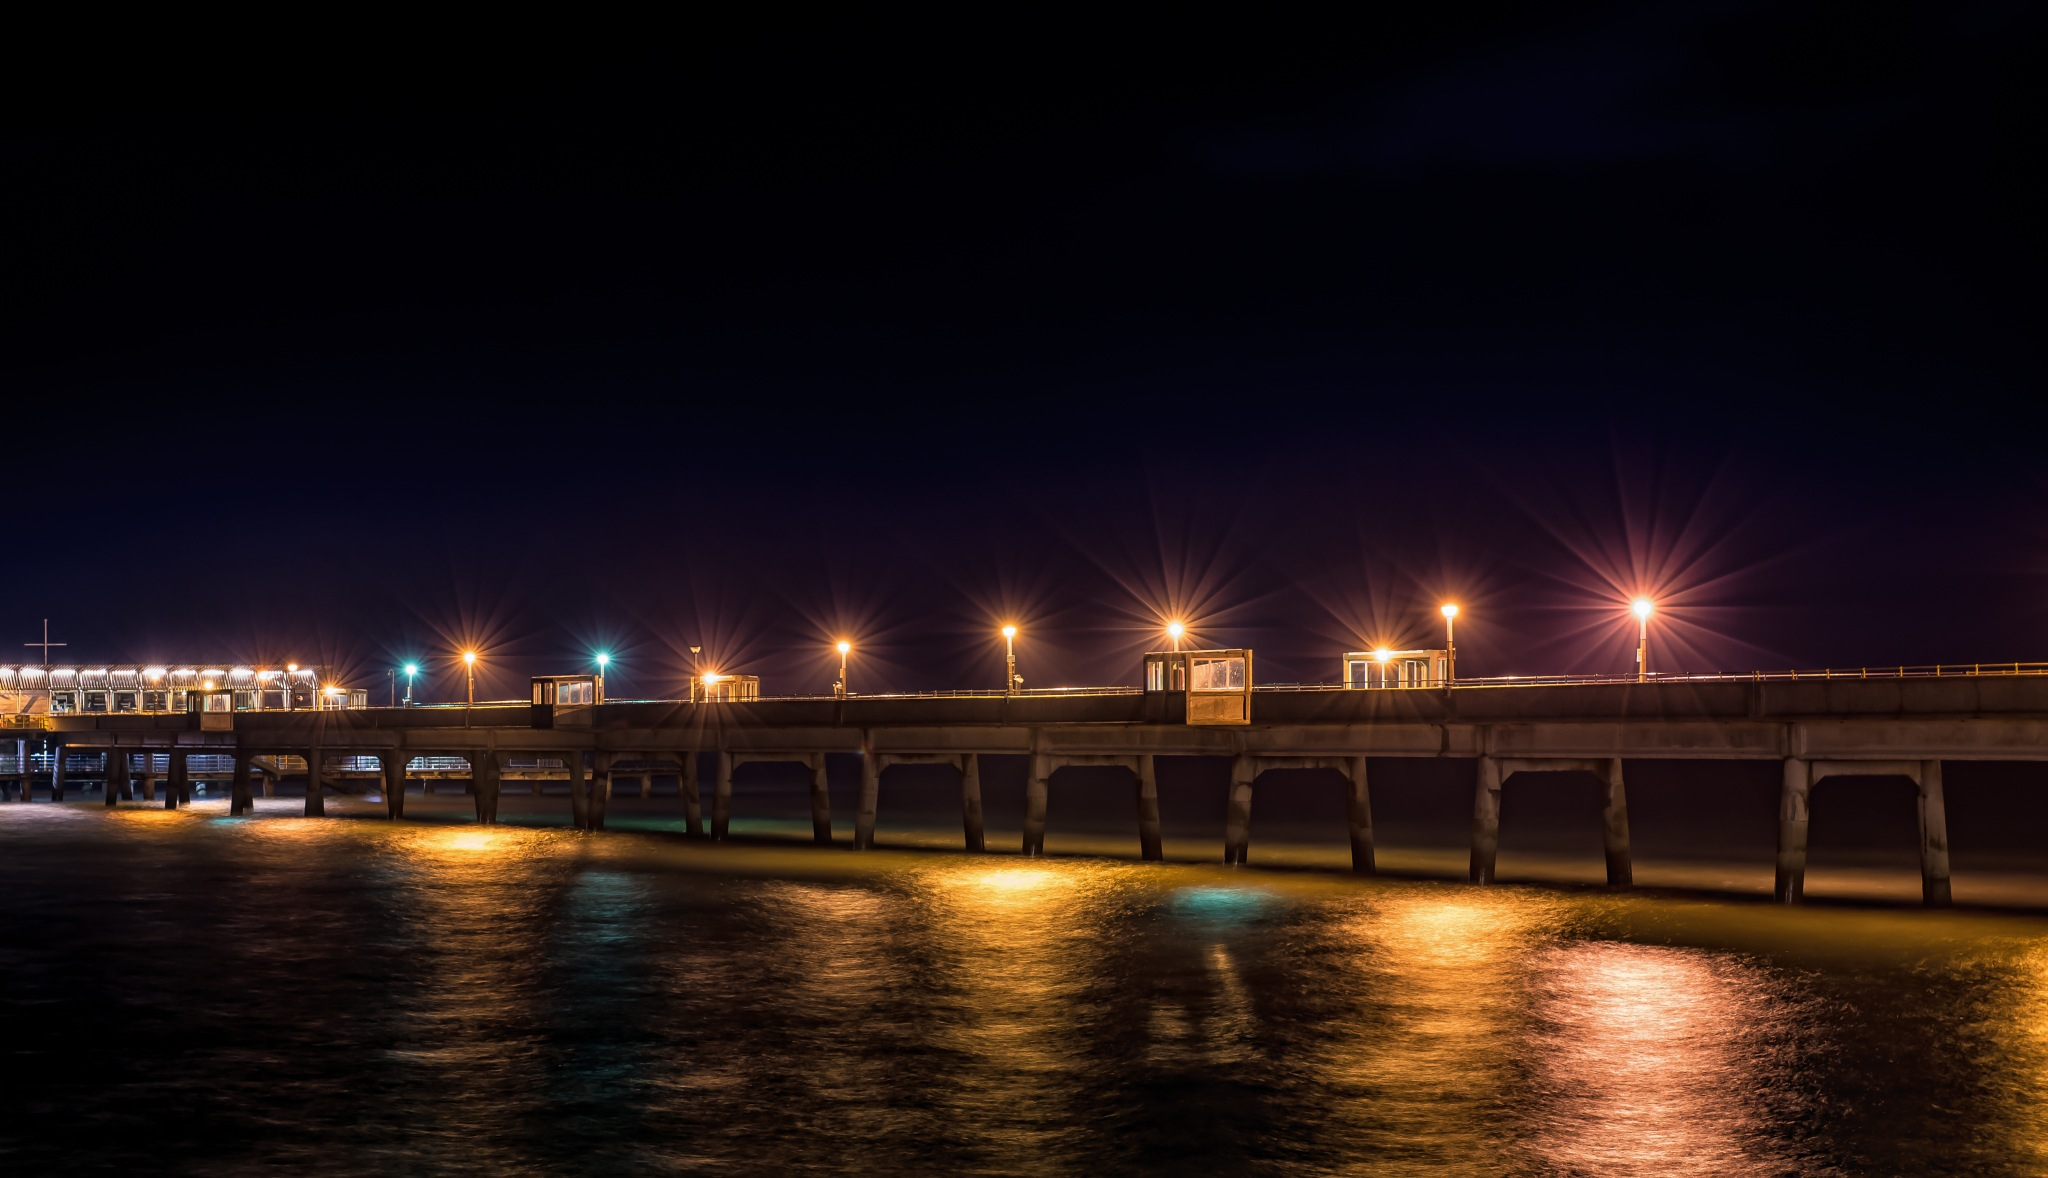 Deal Pier, Kent by Smudgedphotography